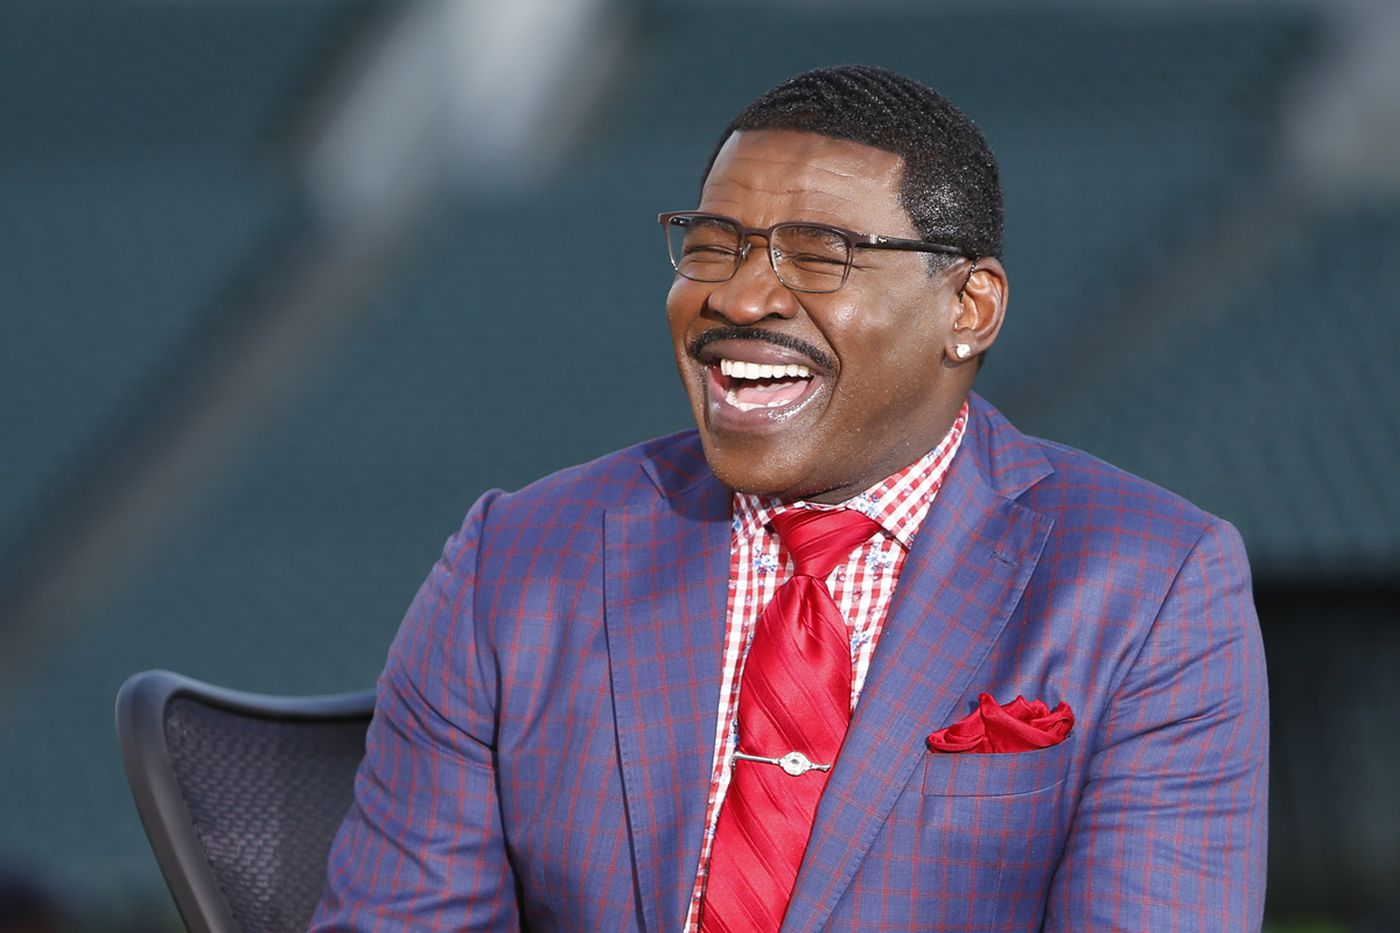 Michael Irvin and Rich Eisen to call Eagles-Jaguars on NFL Network